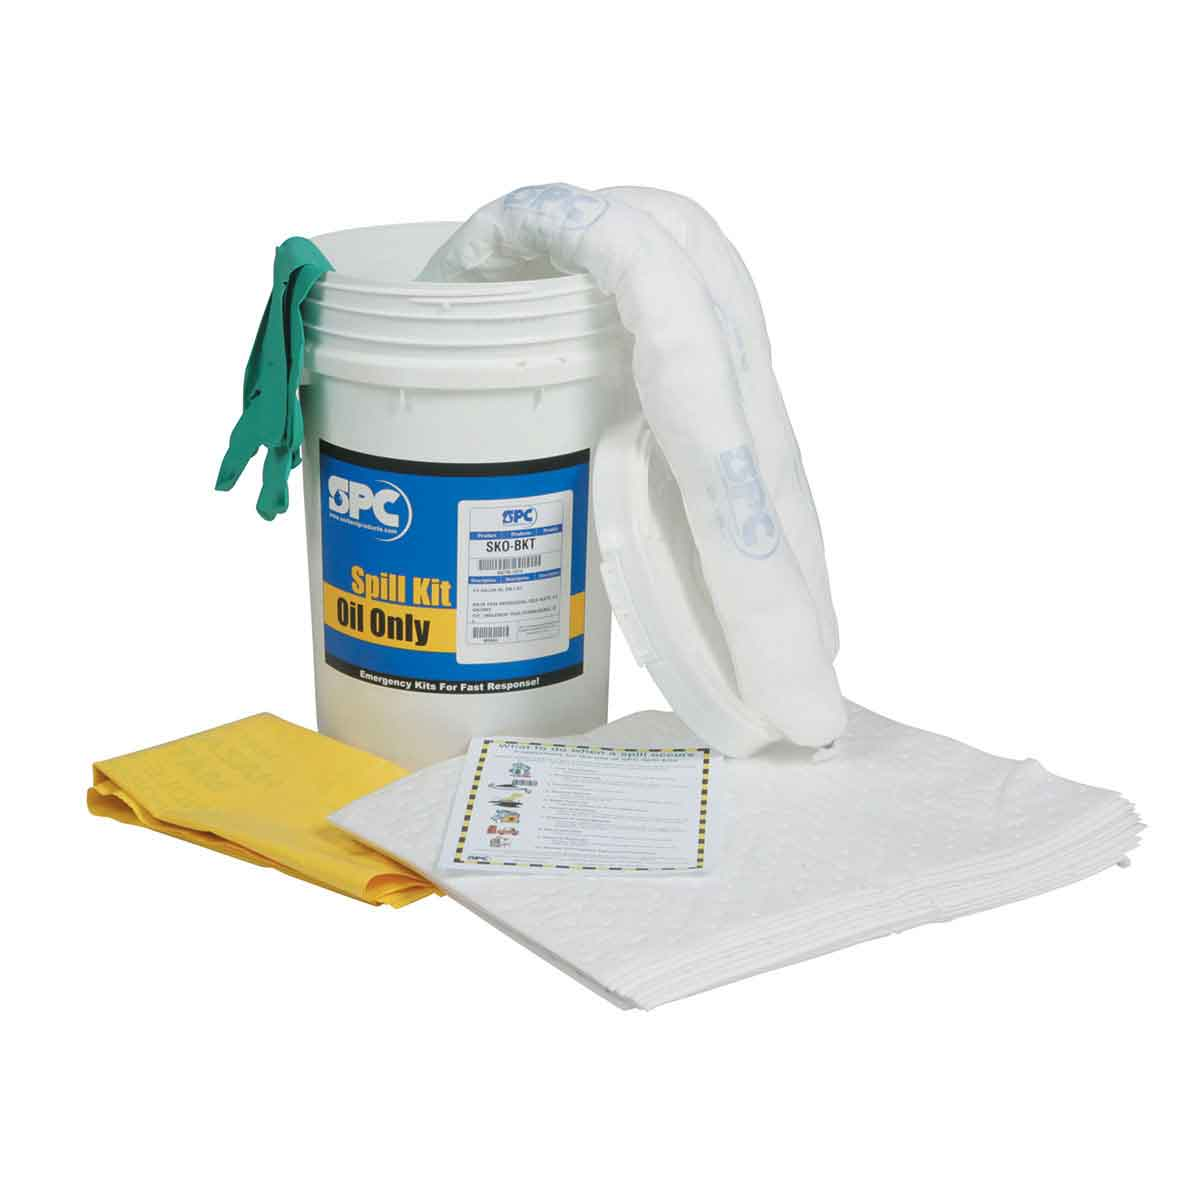 SPC® SKO-BKT Portable Spill Kit, 6.5 gal Bucket, Fluids Absorbed: Oil Only